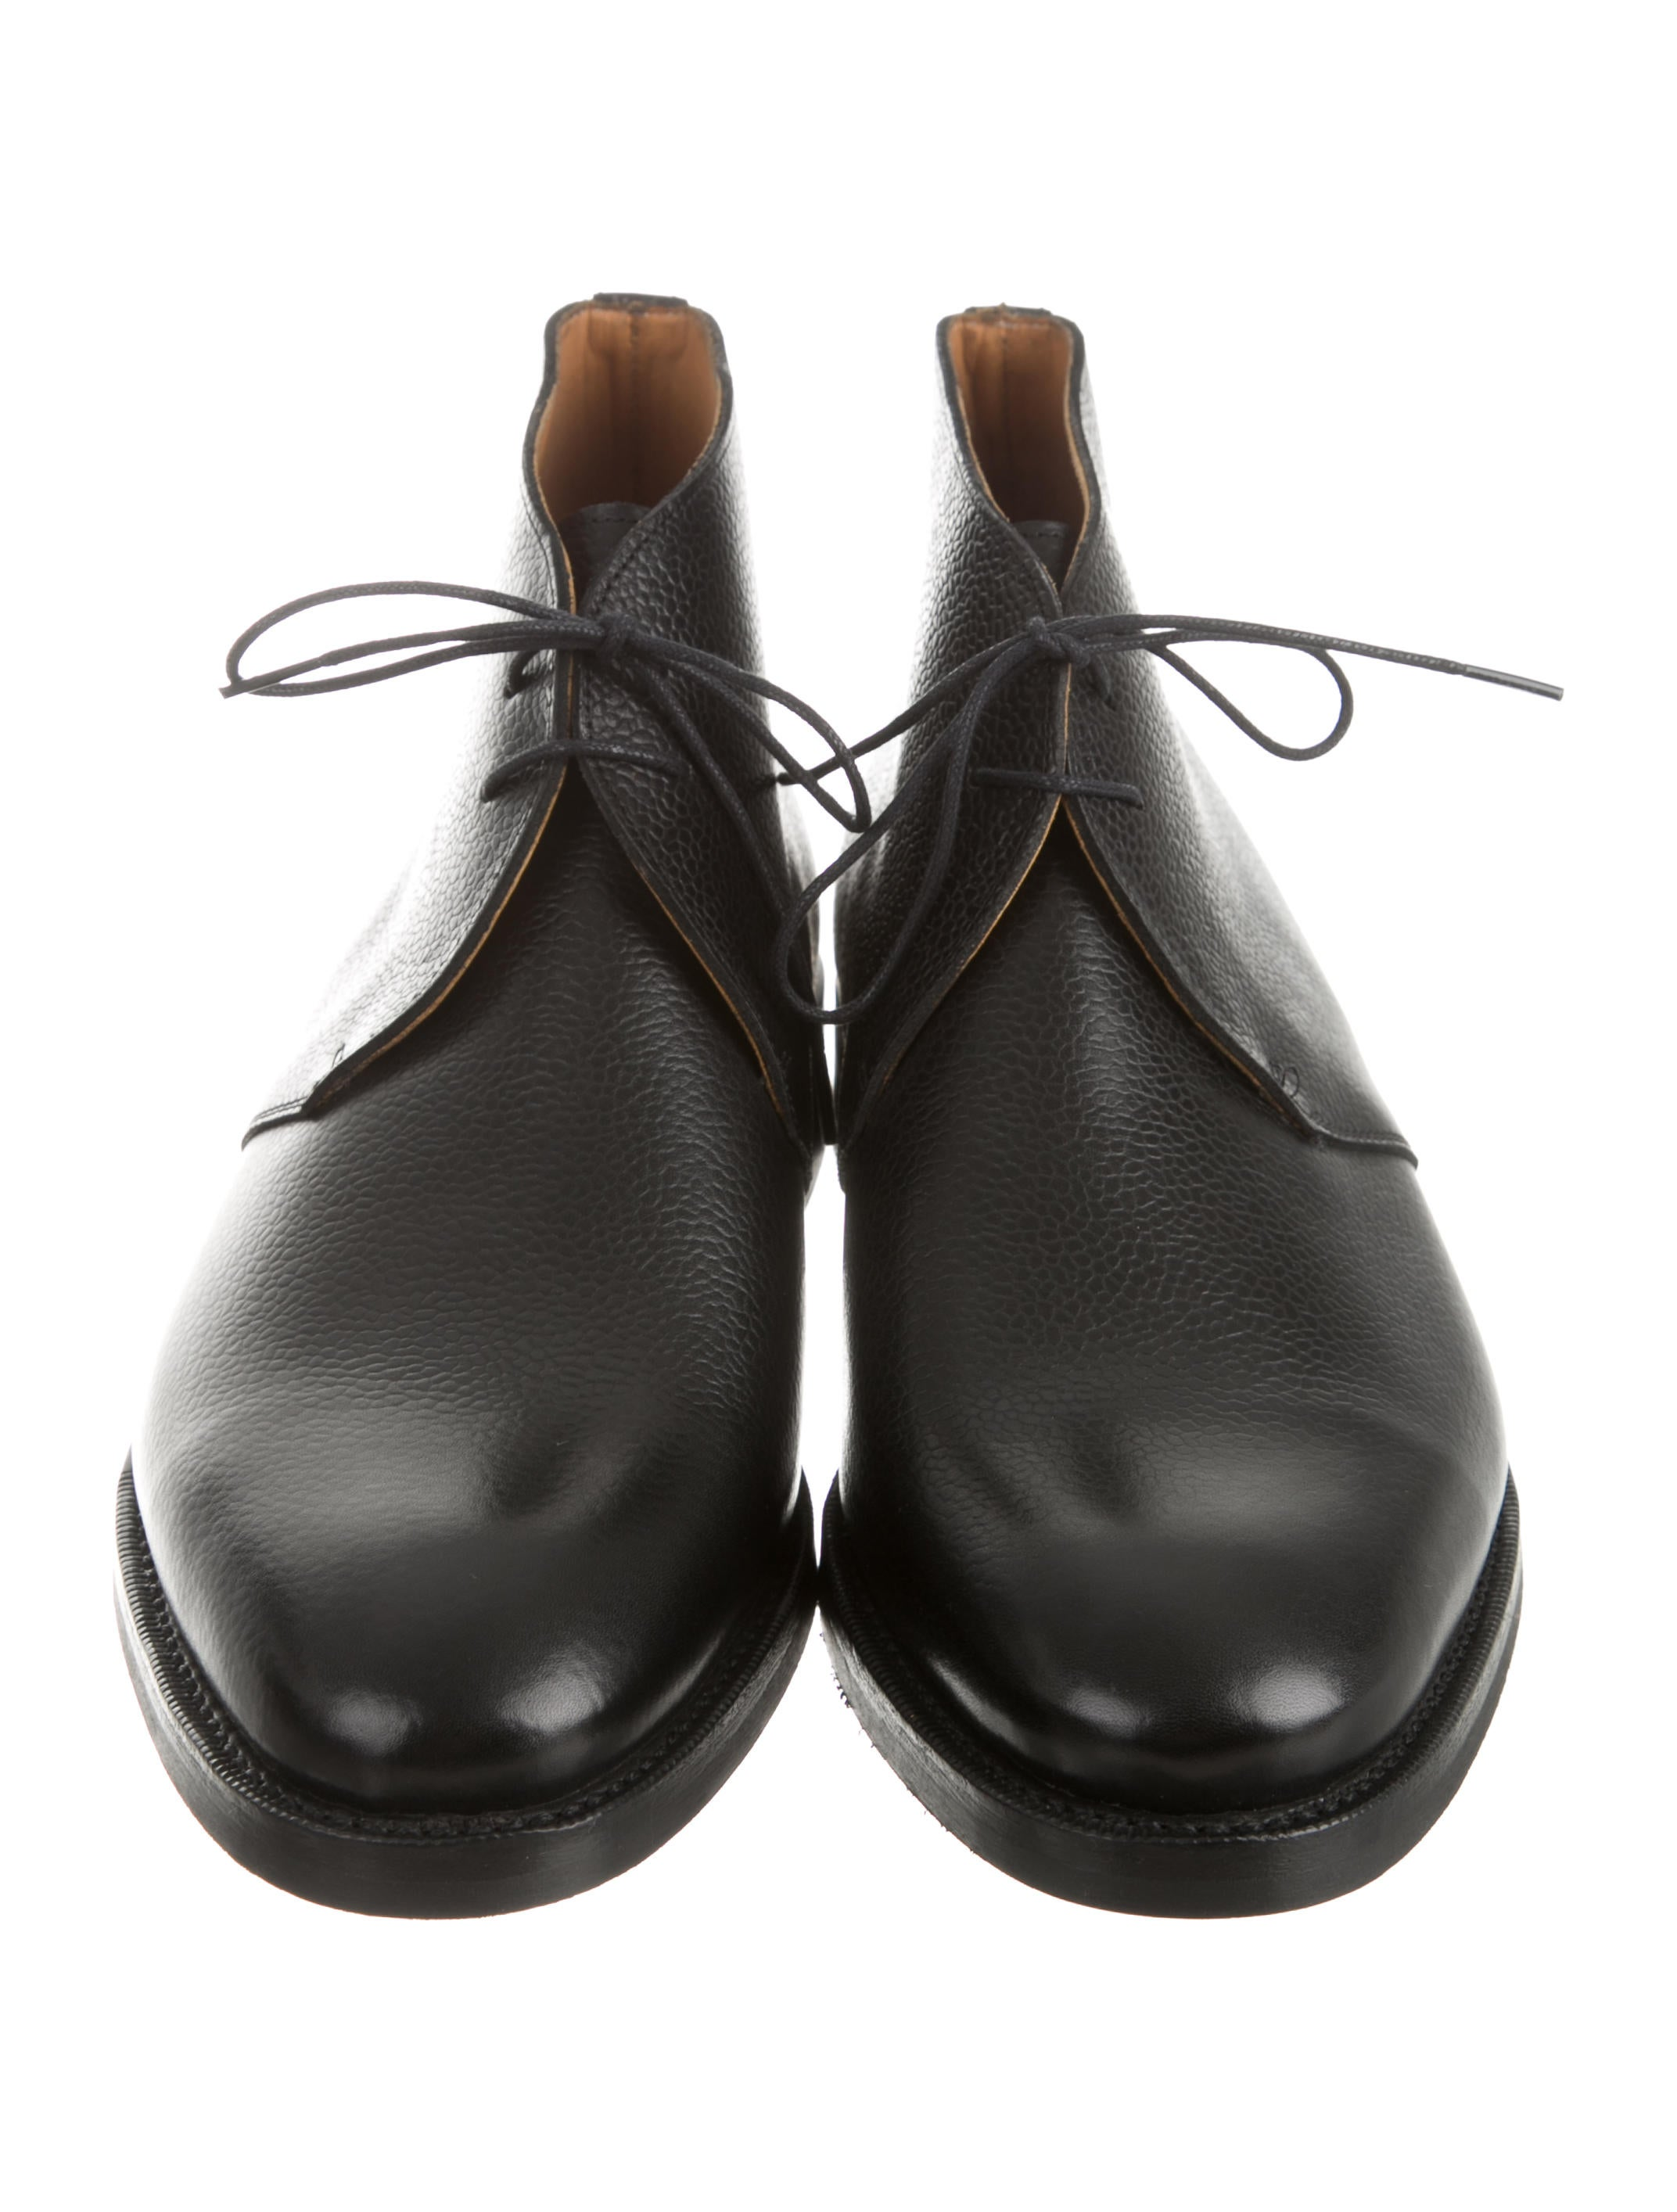 Bow-Tie Leather Harvey Chukka Boots w/ Tags - Shoes - WBOWT20010 ...